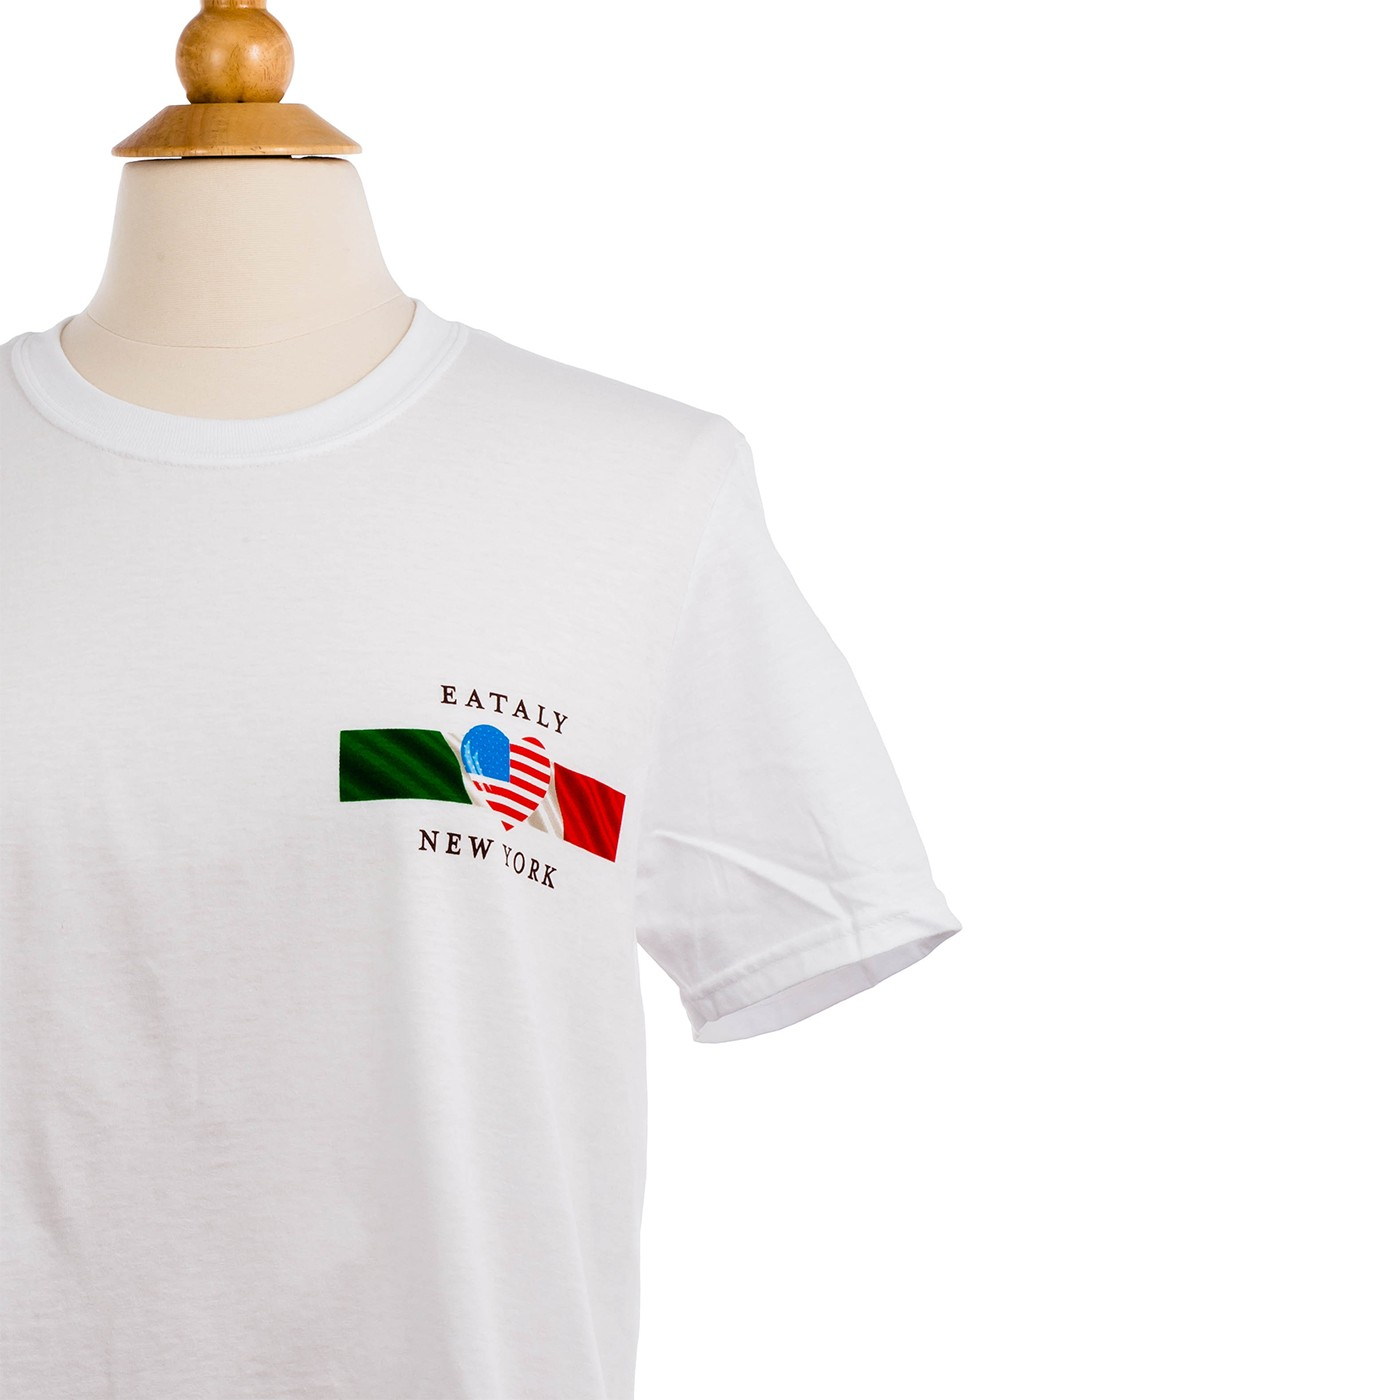 Italy is Eataly T-shirt - Large